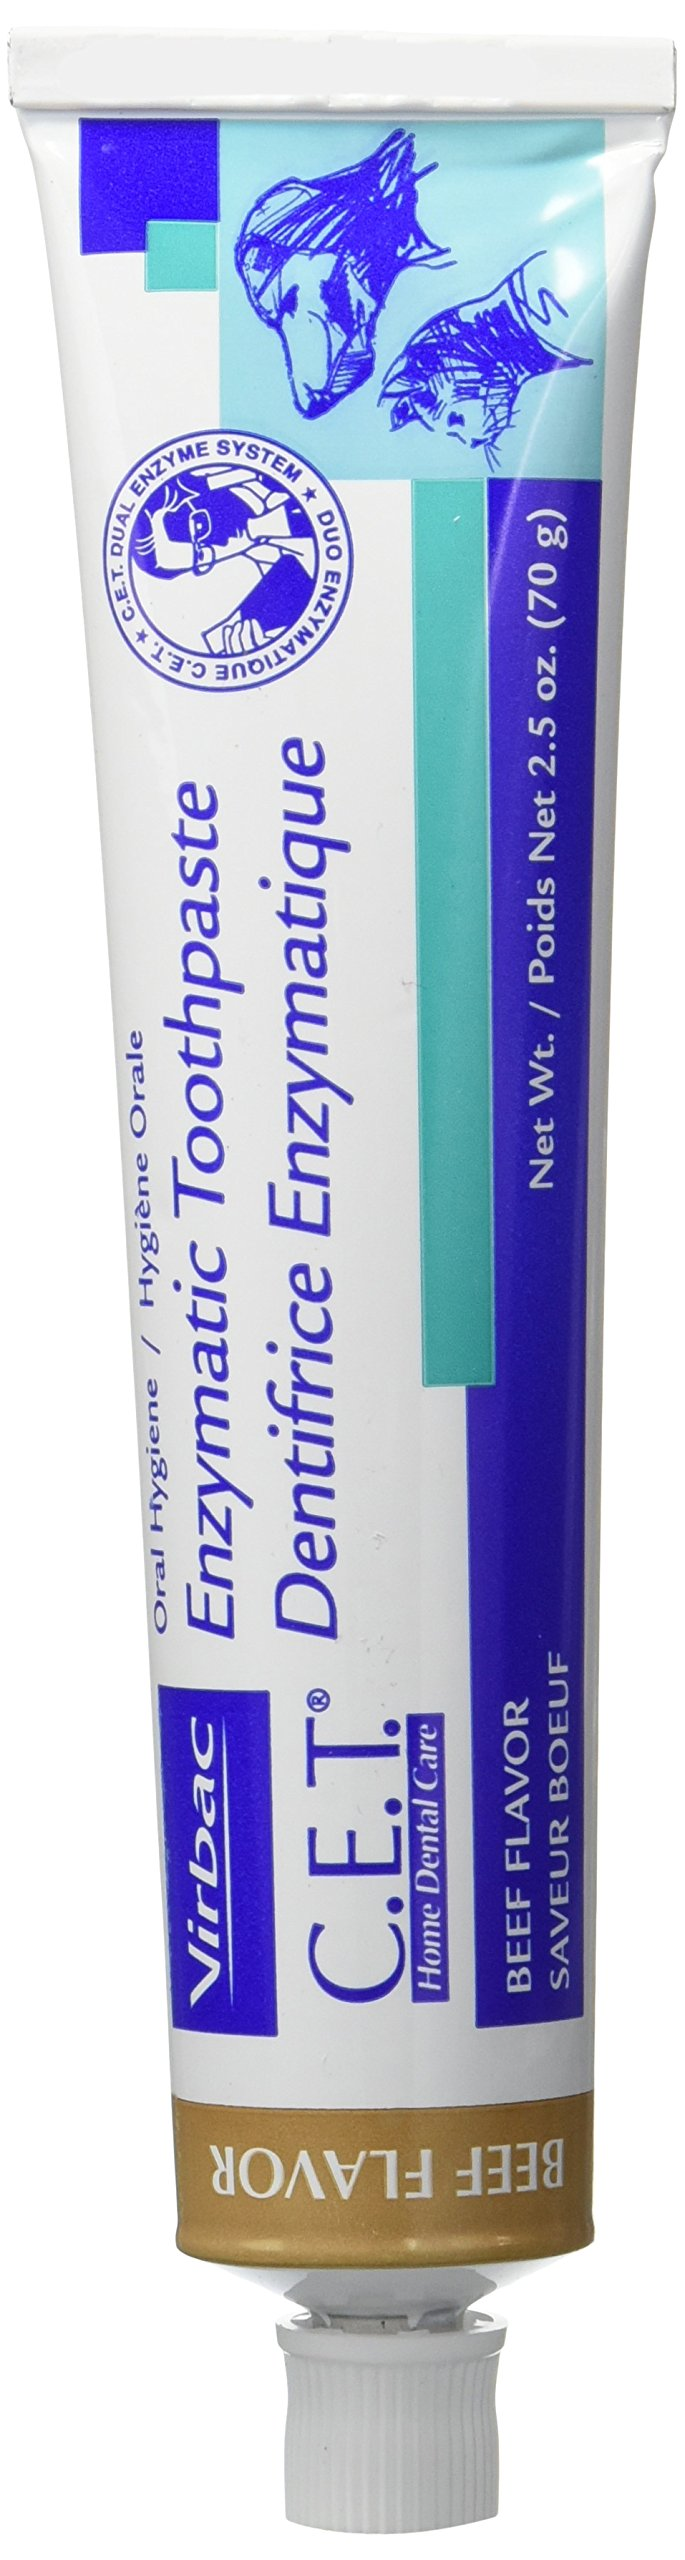 CET Virbac Plaque Tartar Control Enzymatic Dog and Cat Toothpaste, 2.5 oz, Beef